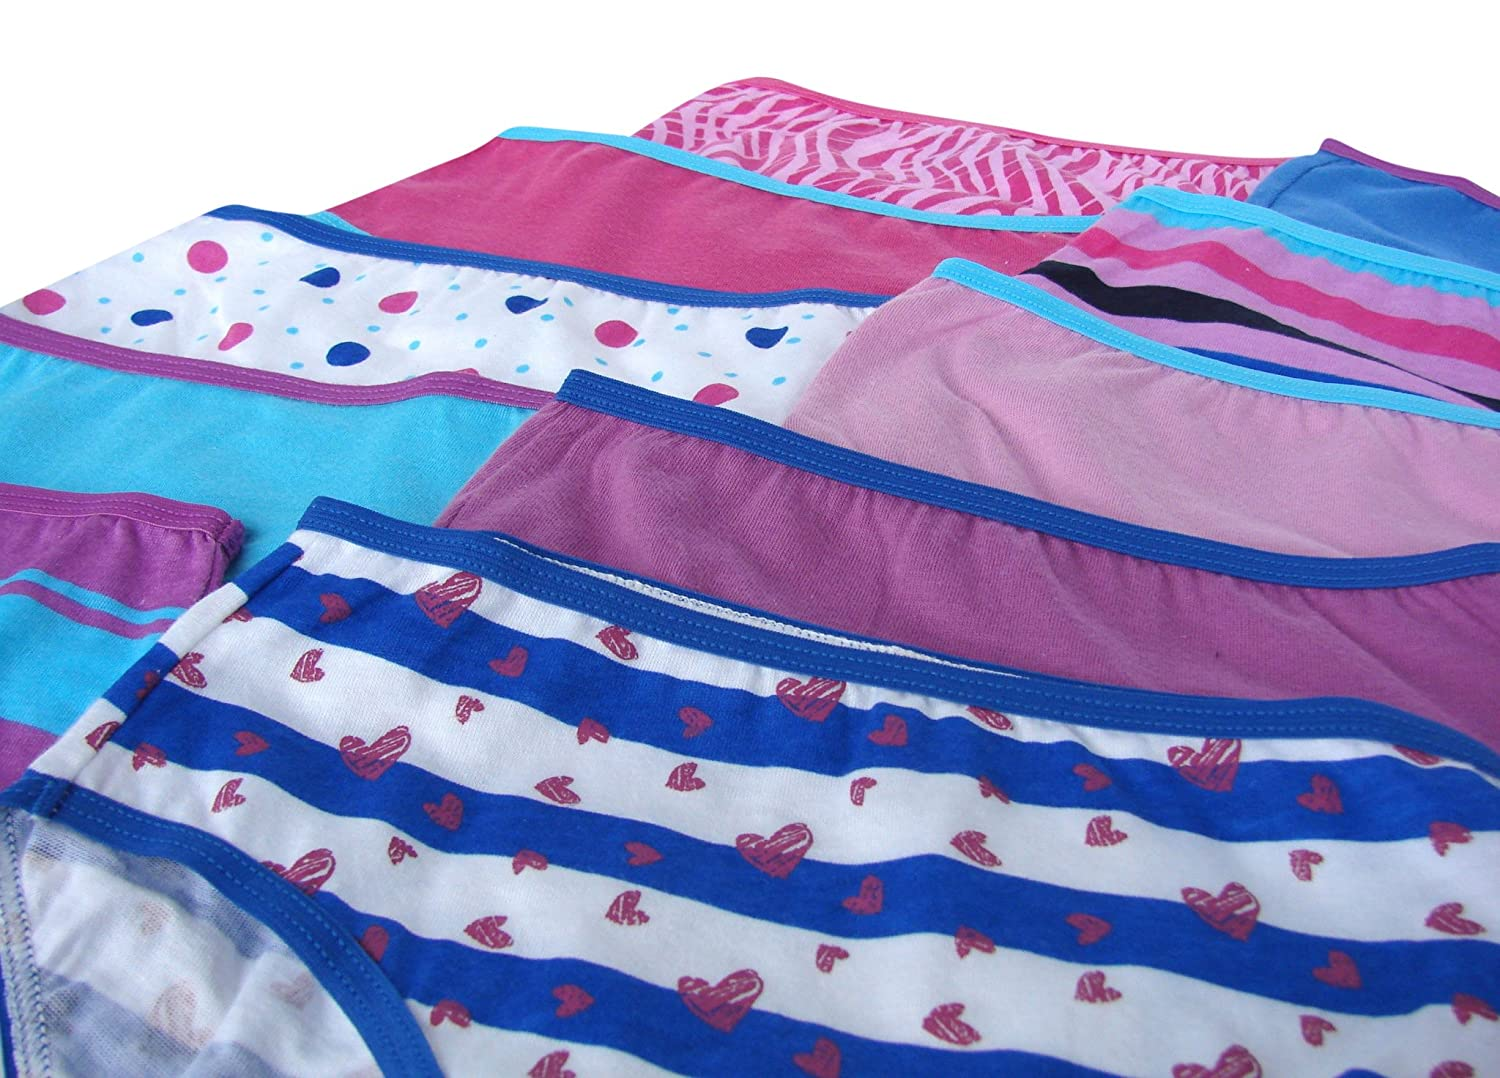 Trimfit Girls 100/% Cotton Colorful Briefs Panties Pack of 10